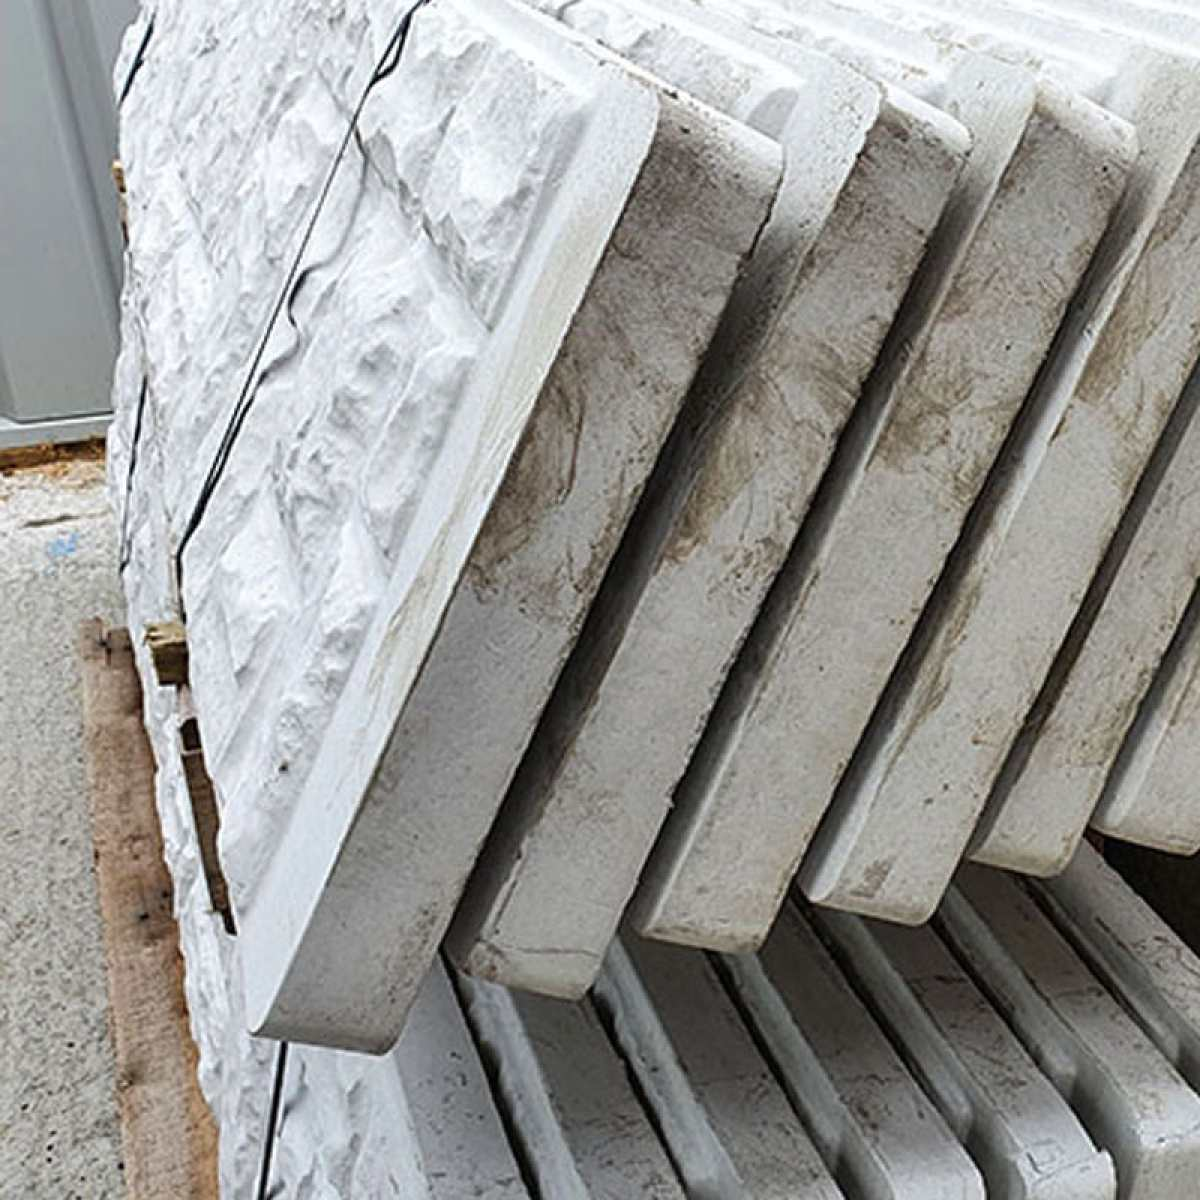 concrete gravel boards Image by Websters Timber